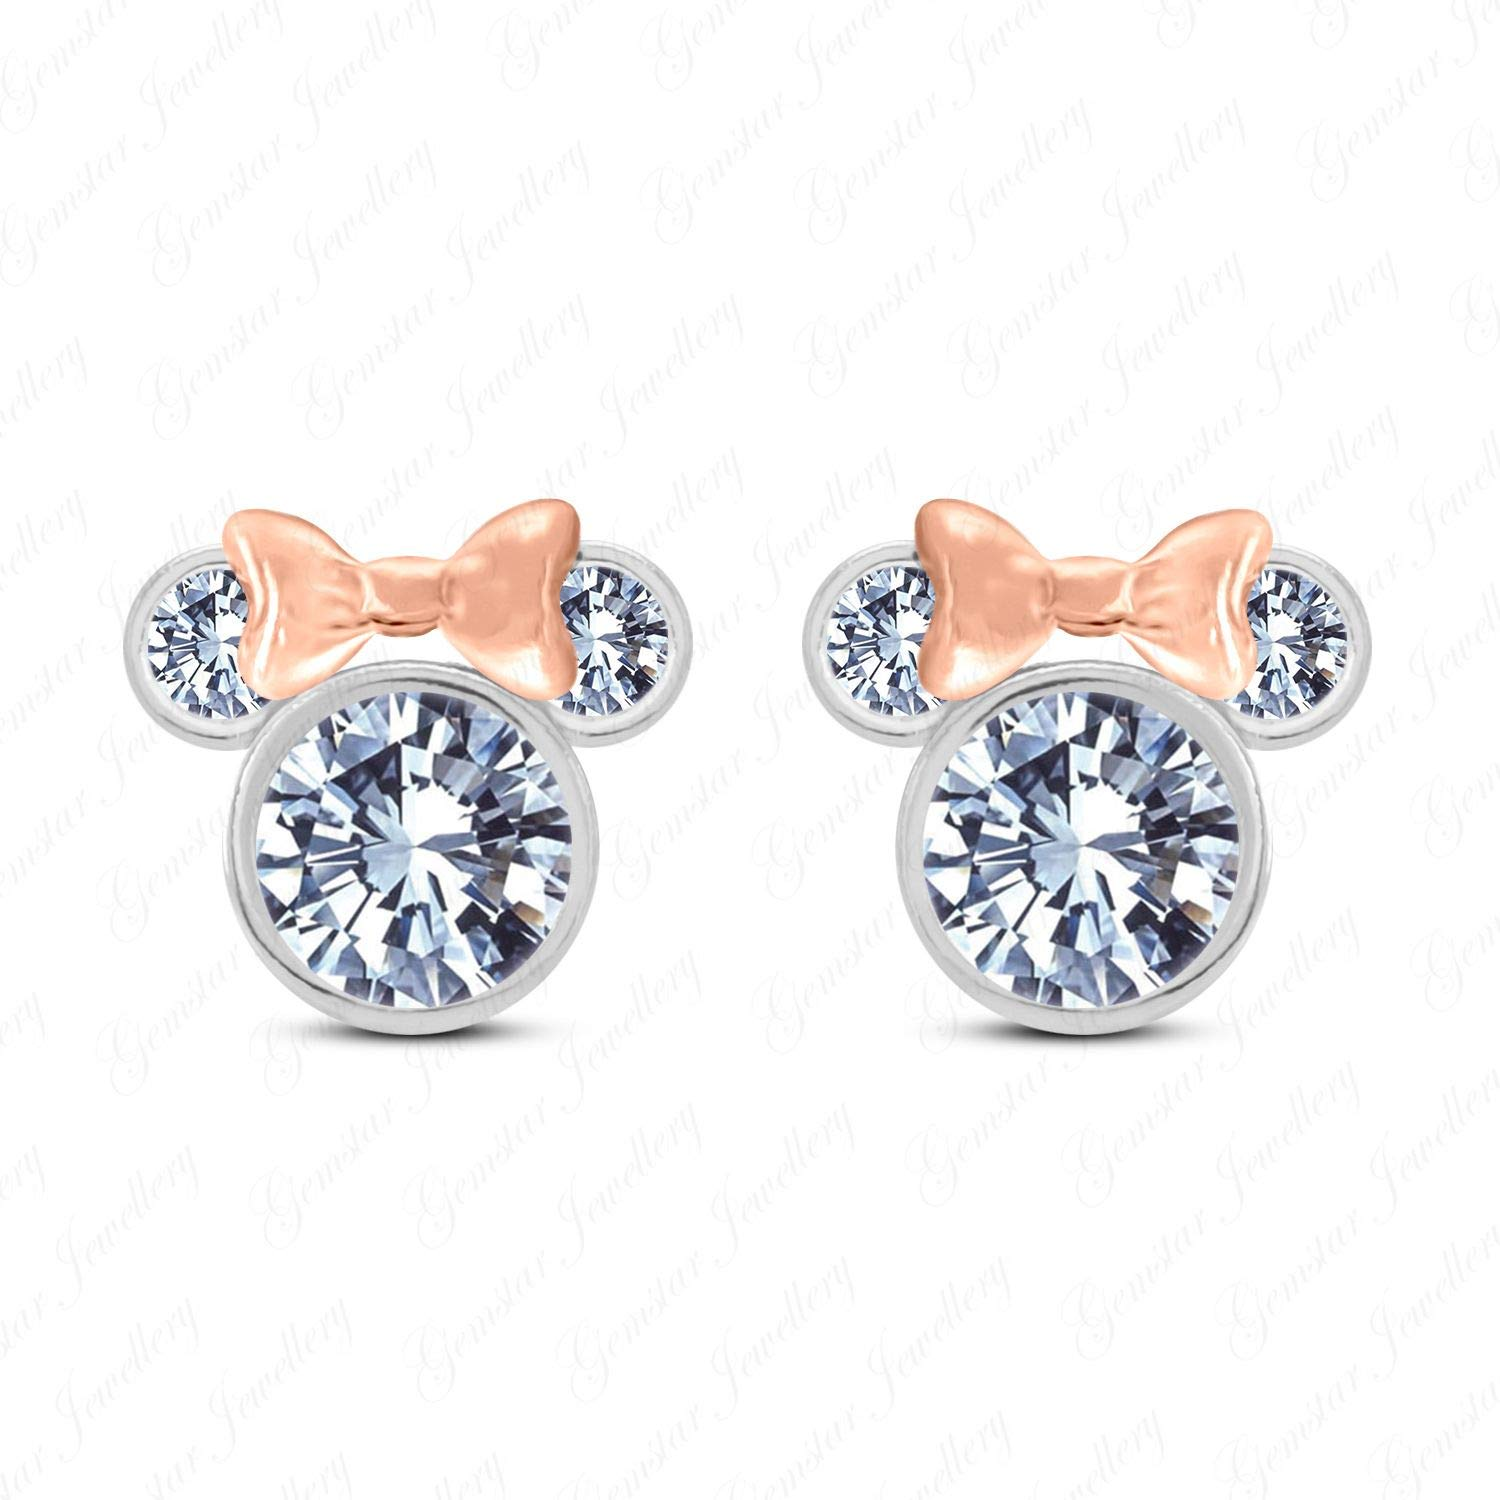 White Cubic Zirconia Womens Girls Disney Mickey Minnie Mouse Stud Earrings 925 Sterling Silver 14k Gold Plated